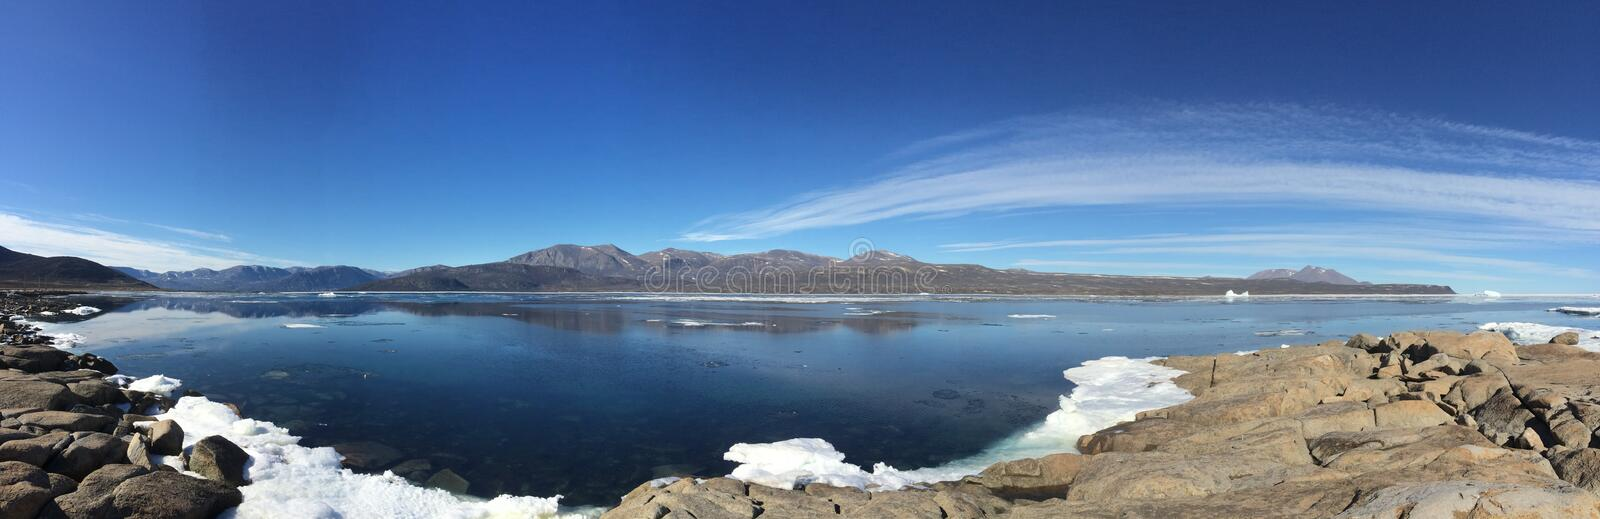 A panoramic view from Qikiqtarjuaq, a Inuit community in the high Canadian arctic located on Broughton Island. Nunavut Canada royalty free stock image